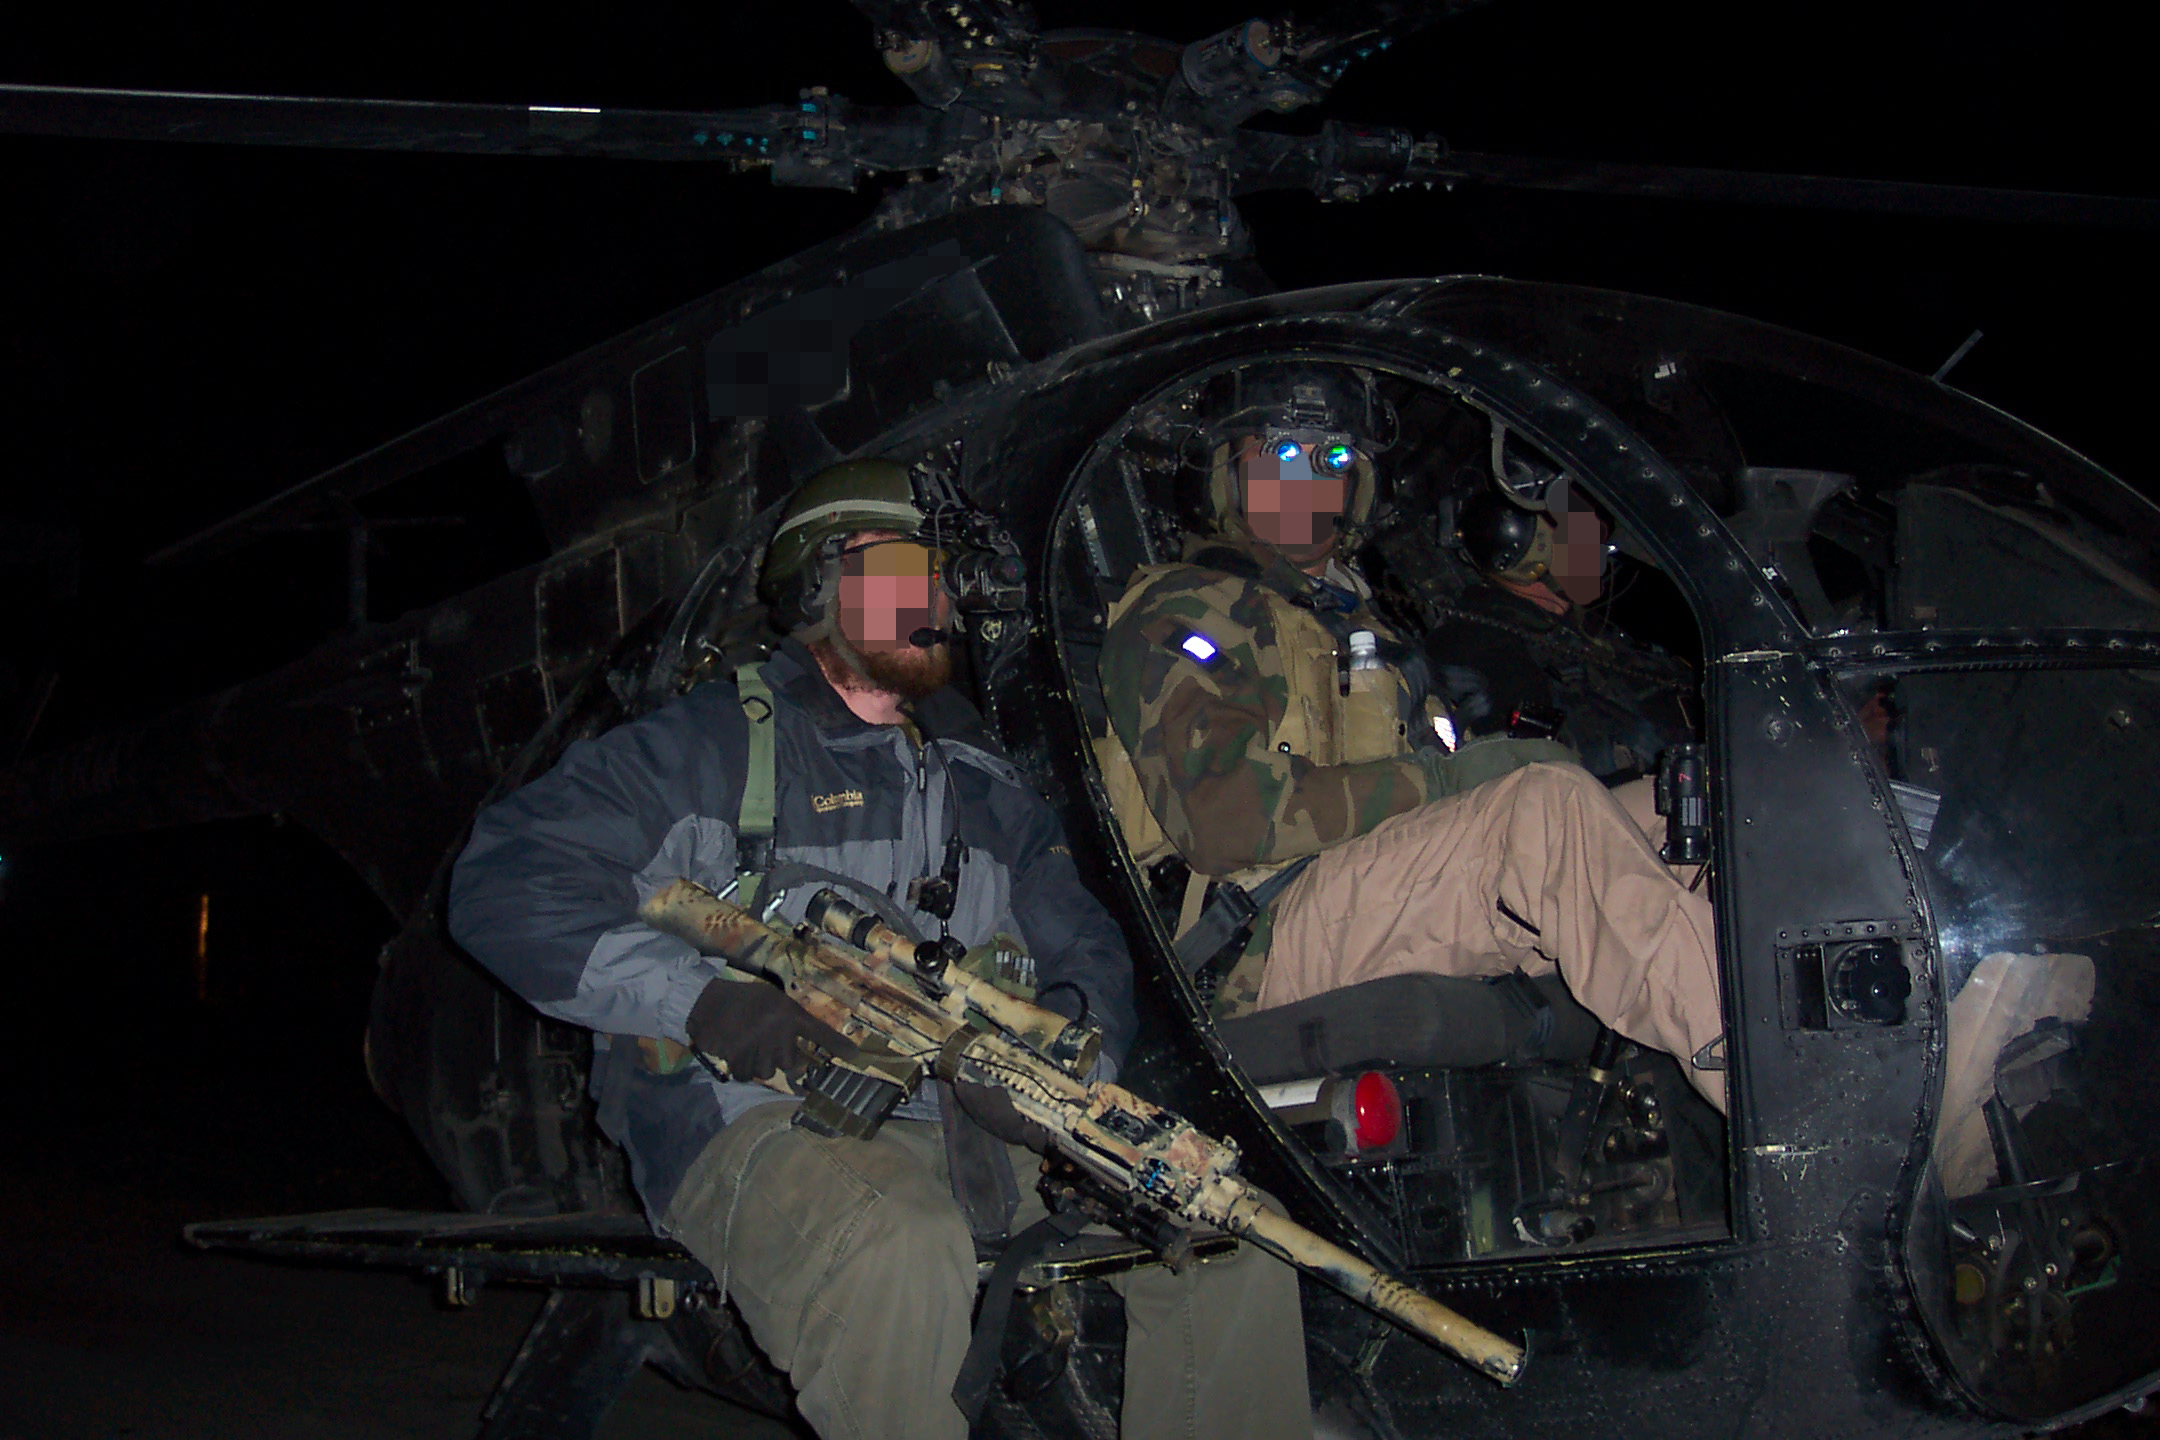 helicopter pilot skills with Sniper on Sniper in addition 1291694 furthermore Elevated Helipad Enhances Training For Air Evac Lifeteam Pilots together with Military photos 20091111232014 furthermore Watch.